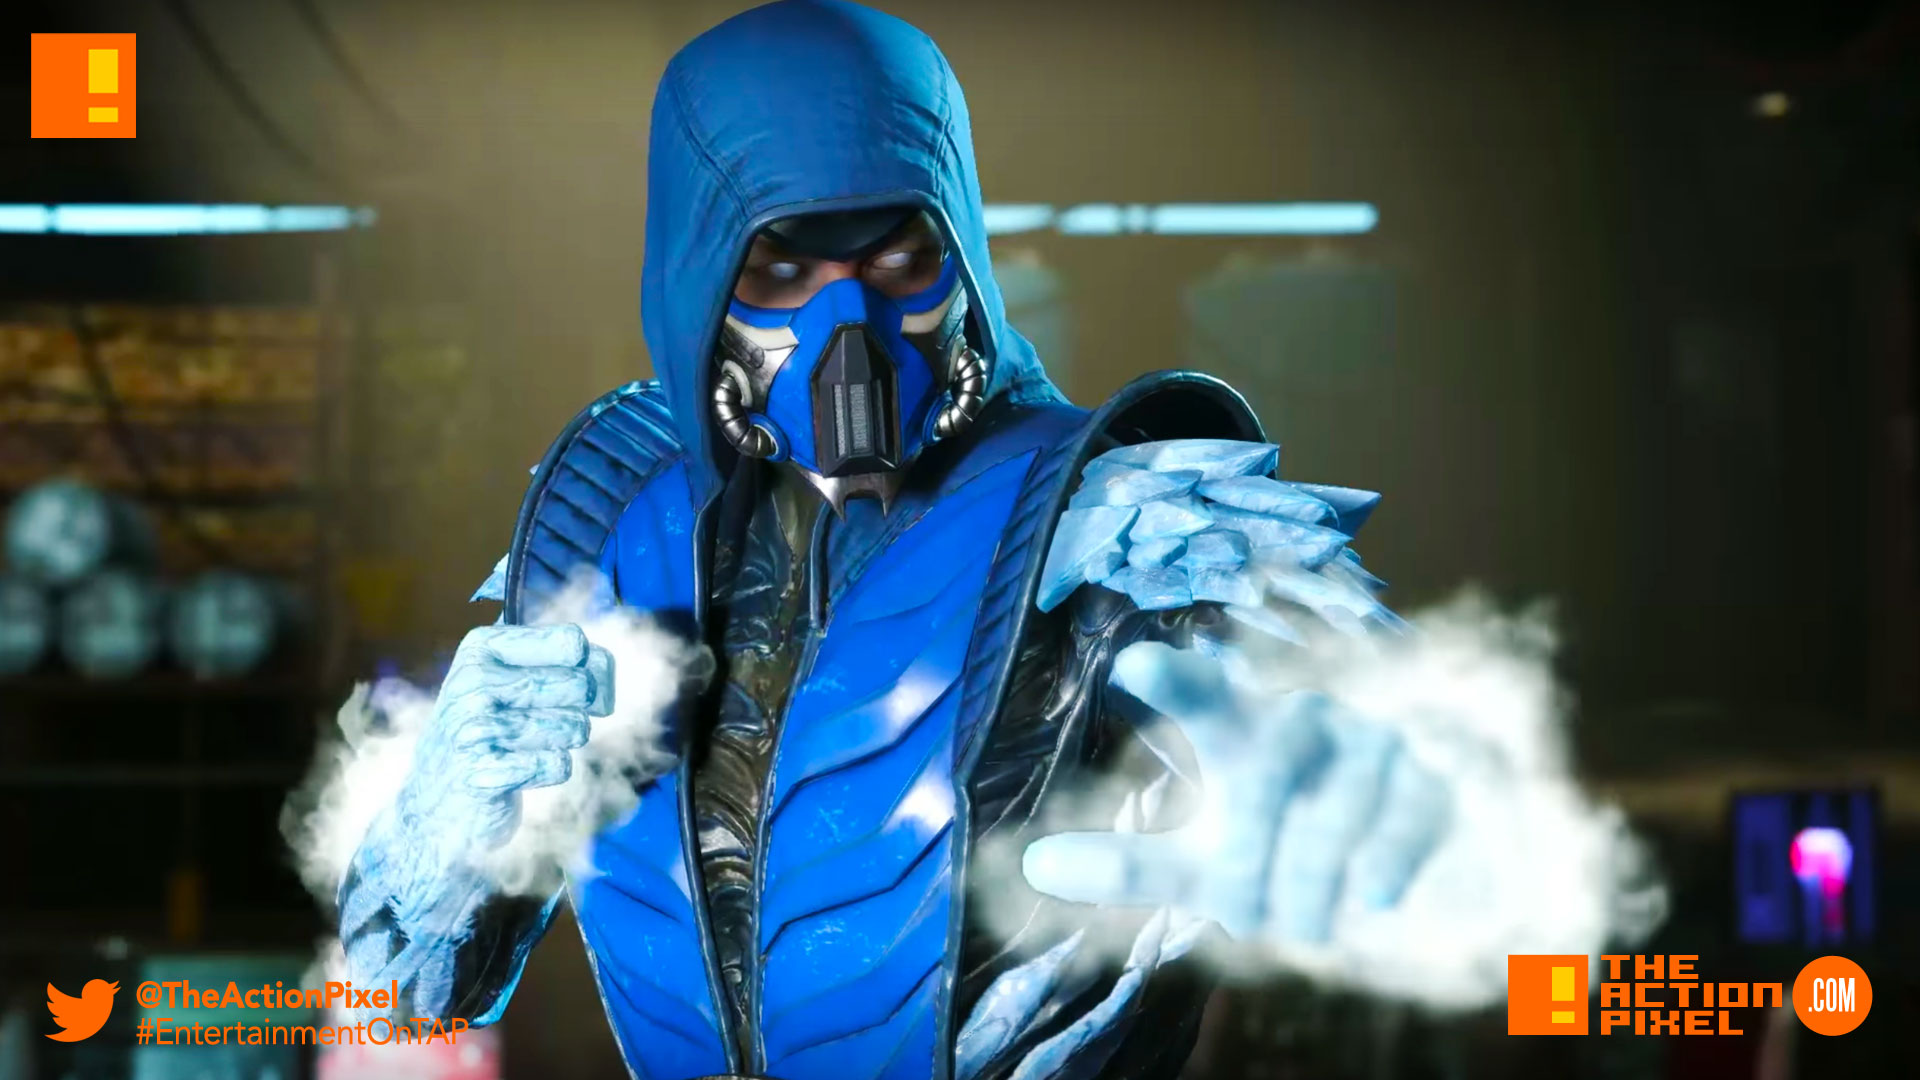 sub zero,injustice 2, the action pixel, entertainment on tap, trailer, character trailer,